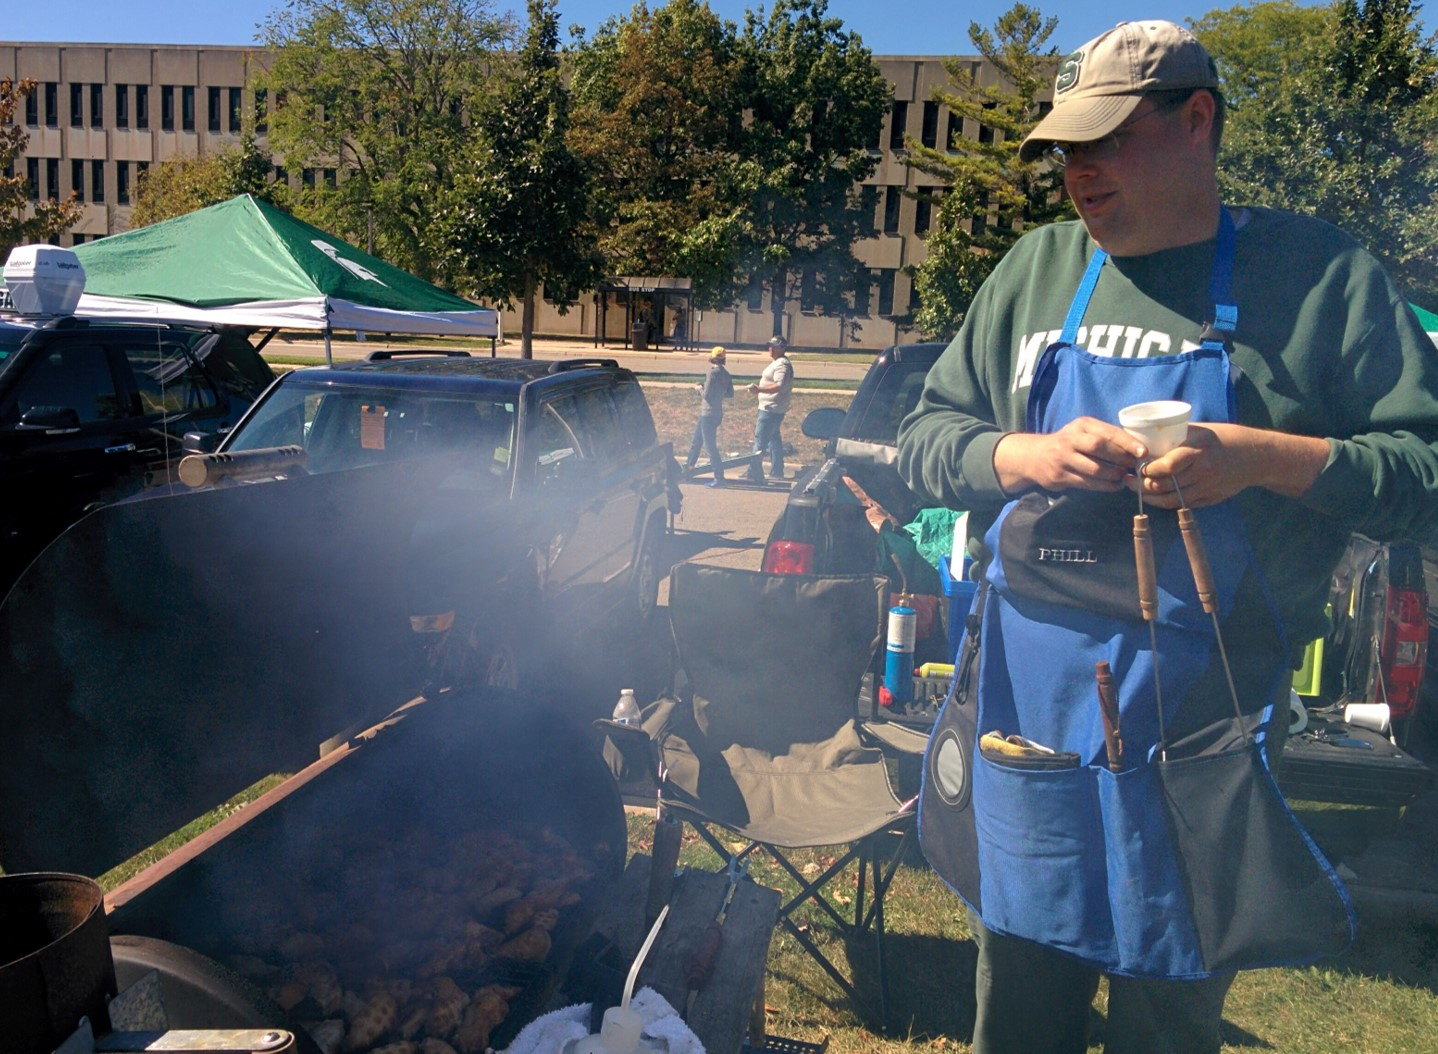 Grillmaster Phil at the MSU MMG tailgate